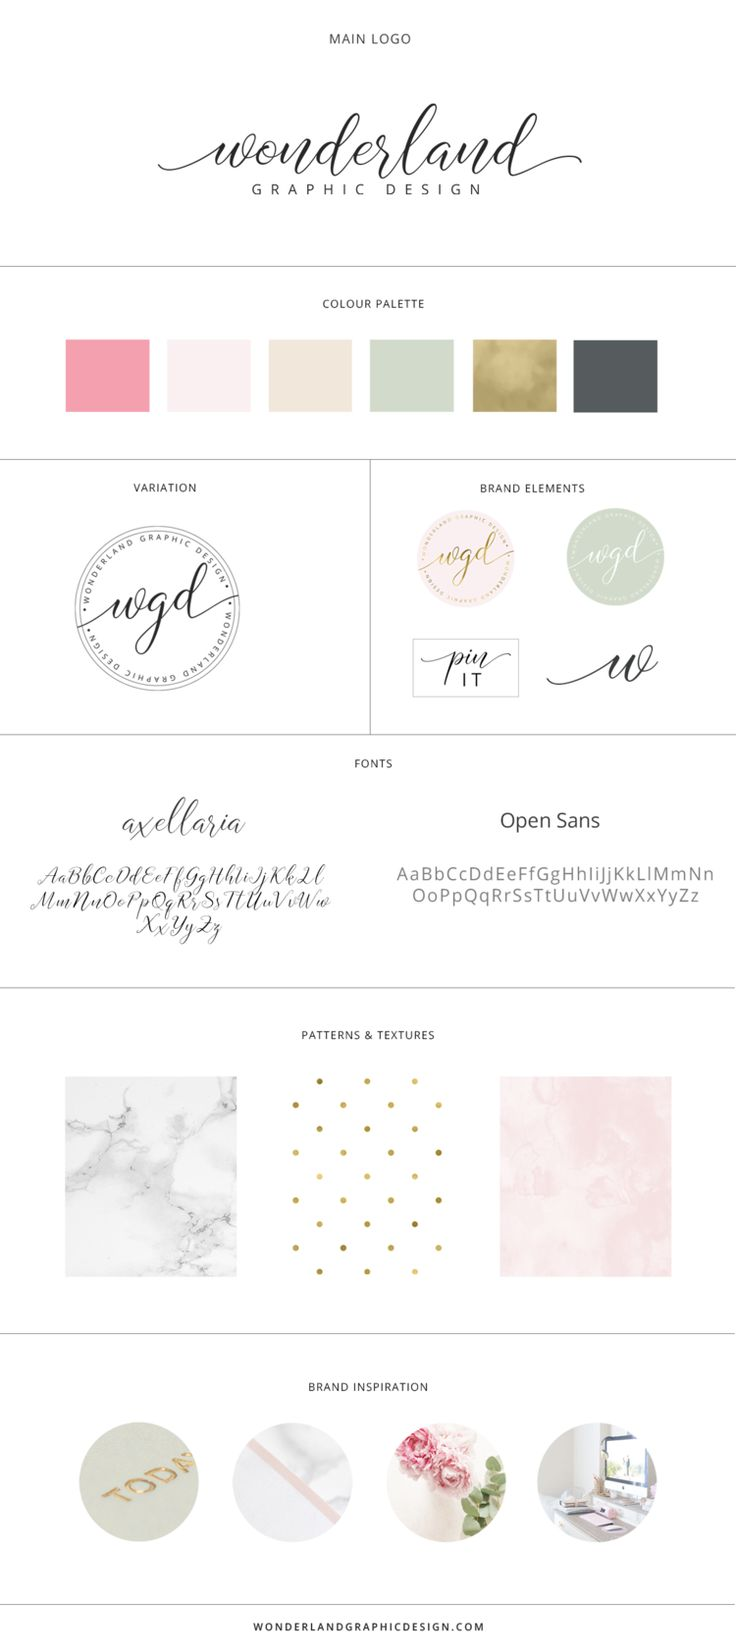 Brand board for Wonderland Graphic Design. Brand style guide including main logo, submark, stamp, branding elements, pin-it button, soft feminine pink neutral and green color palette, script font and sans serif typography, marble, watercolor and polka dot patterns. Branding, female entrepreneurs, girlbosses, workspace pretty desk, small business owners & bloggers.